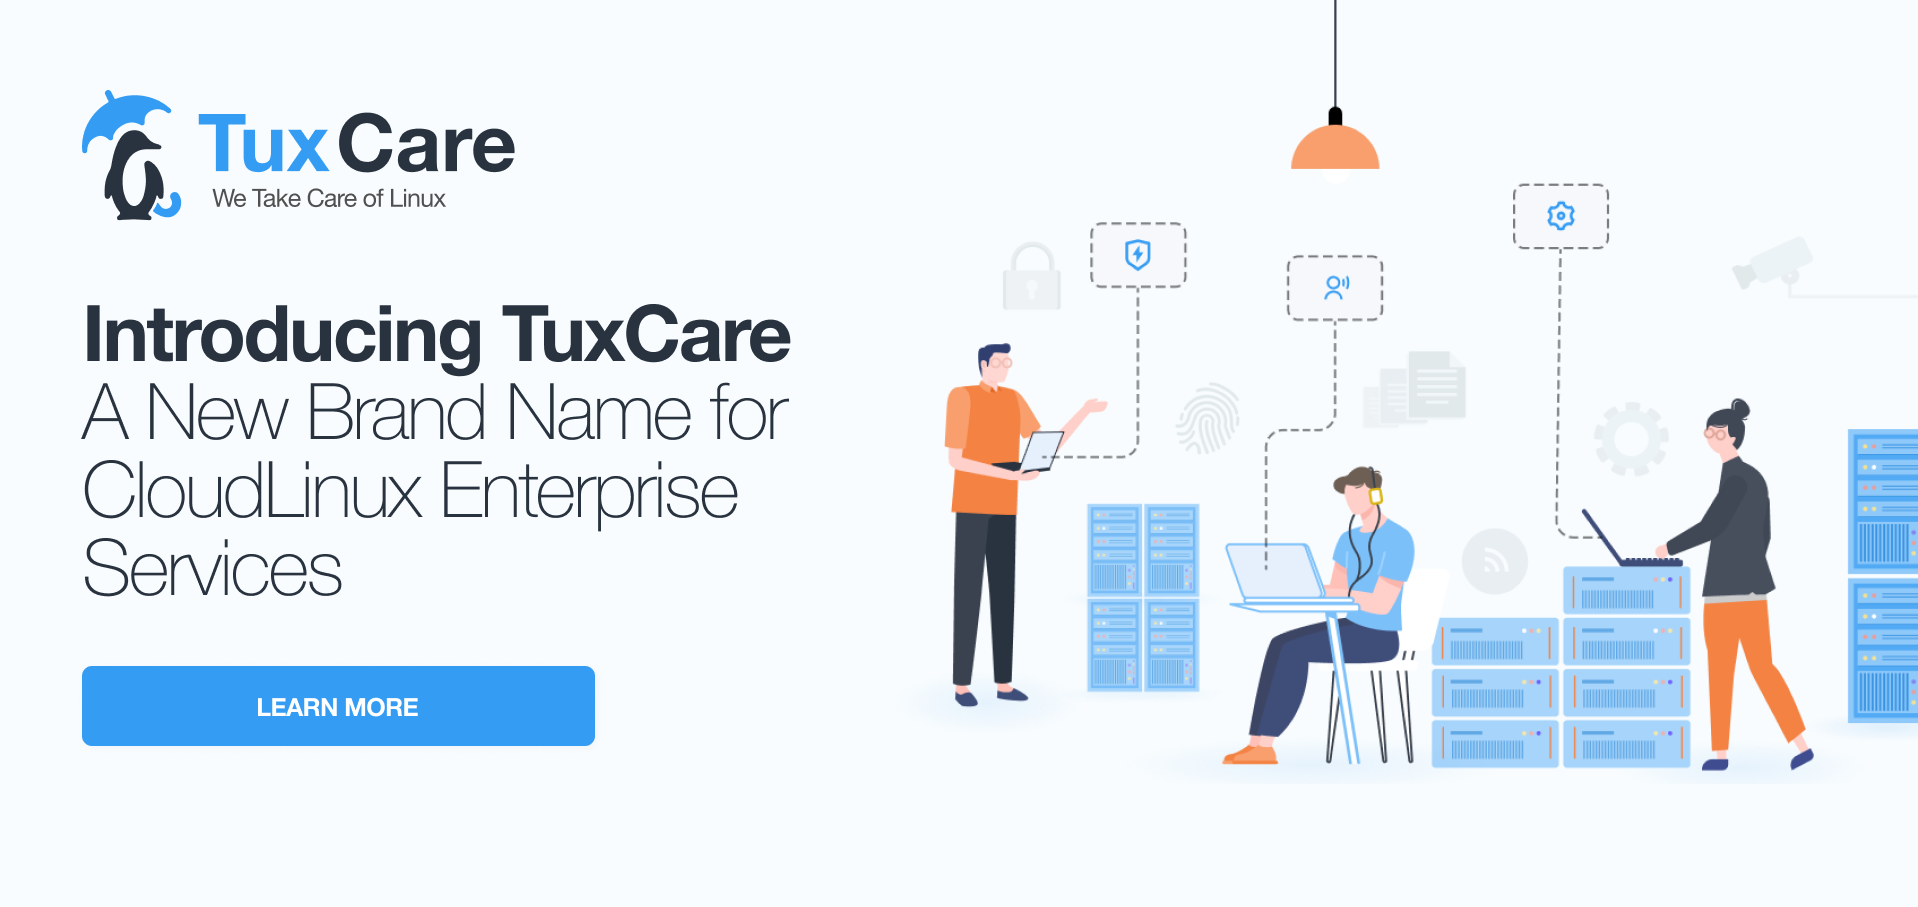 TuxCare - our new brand that brings together all Enterprise products